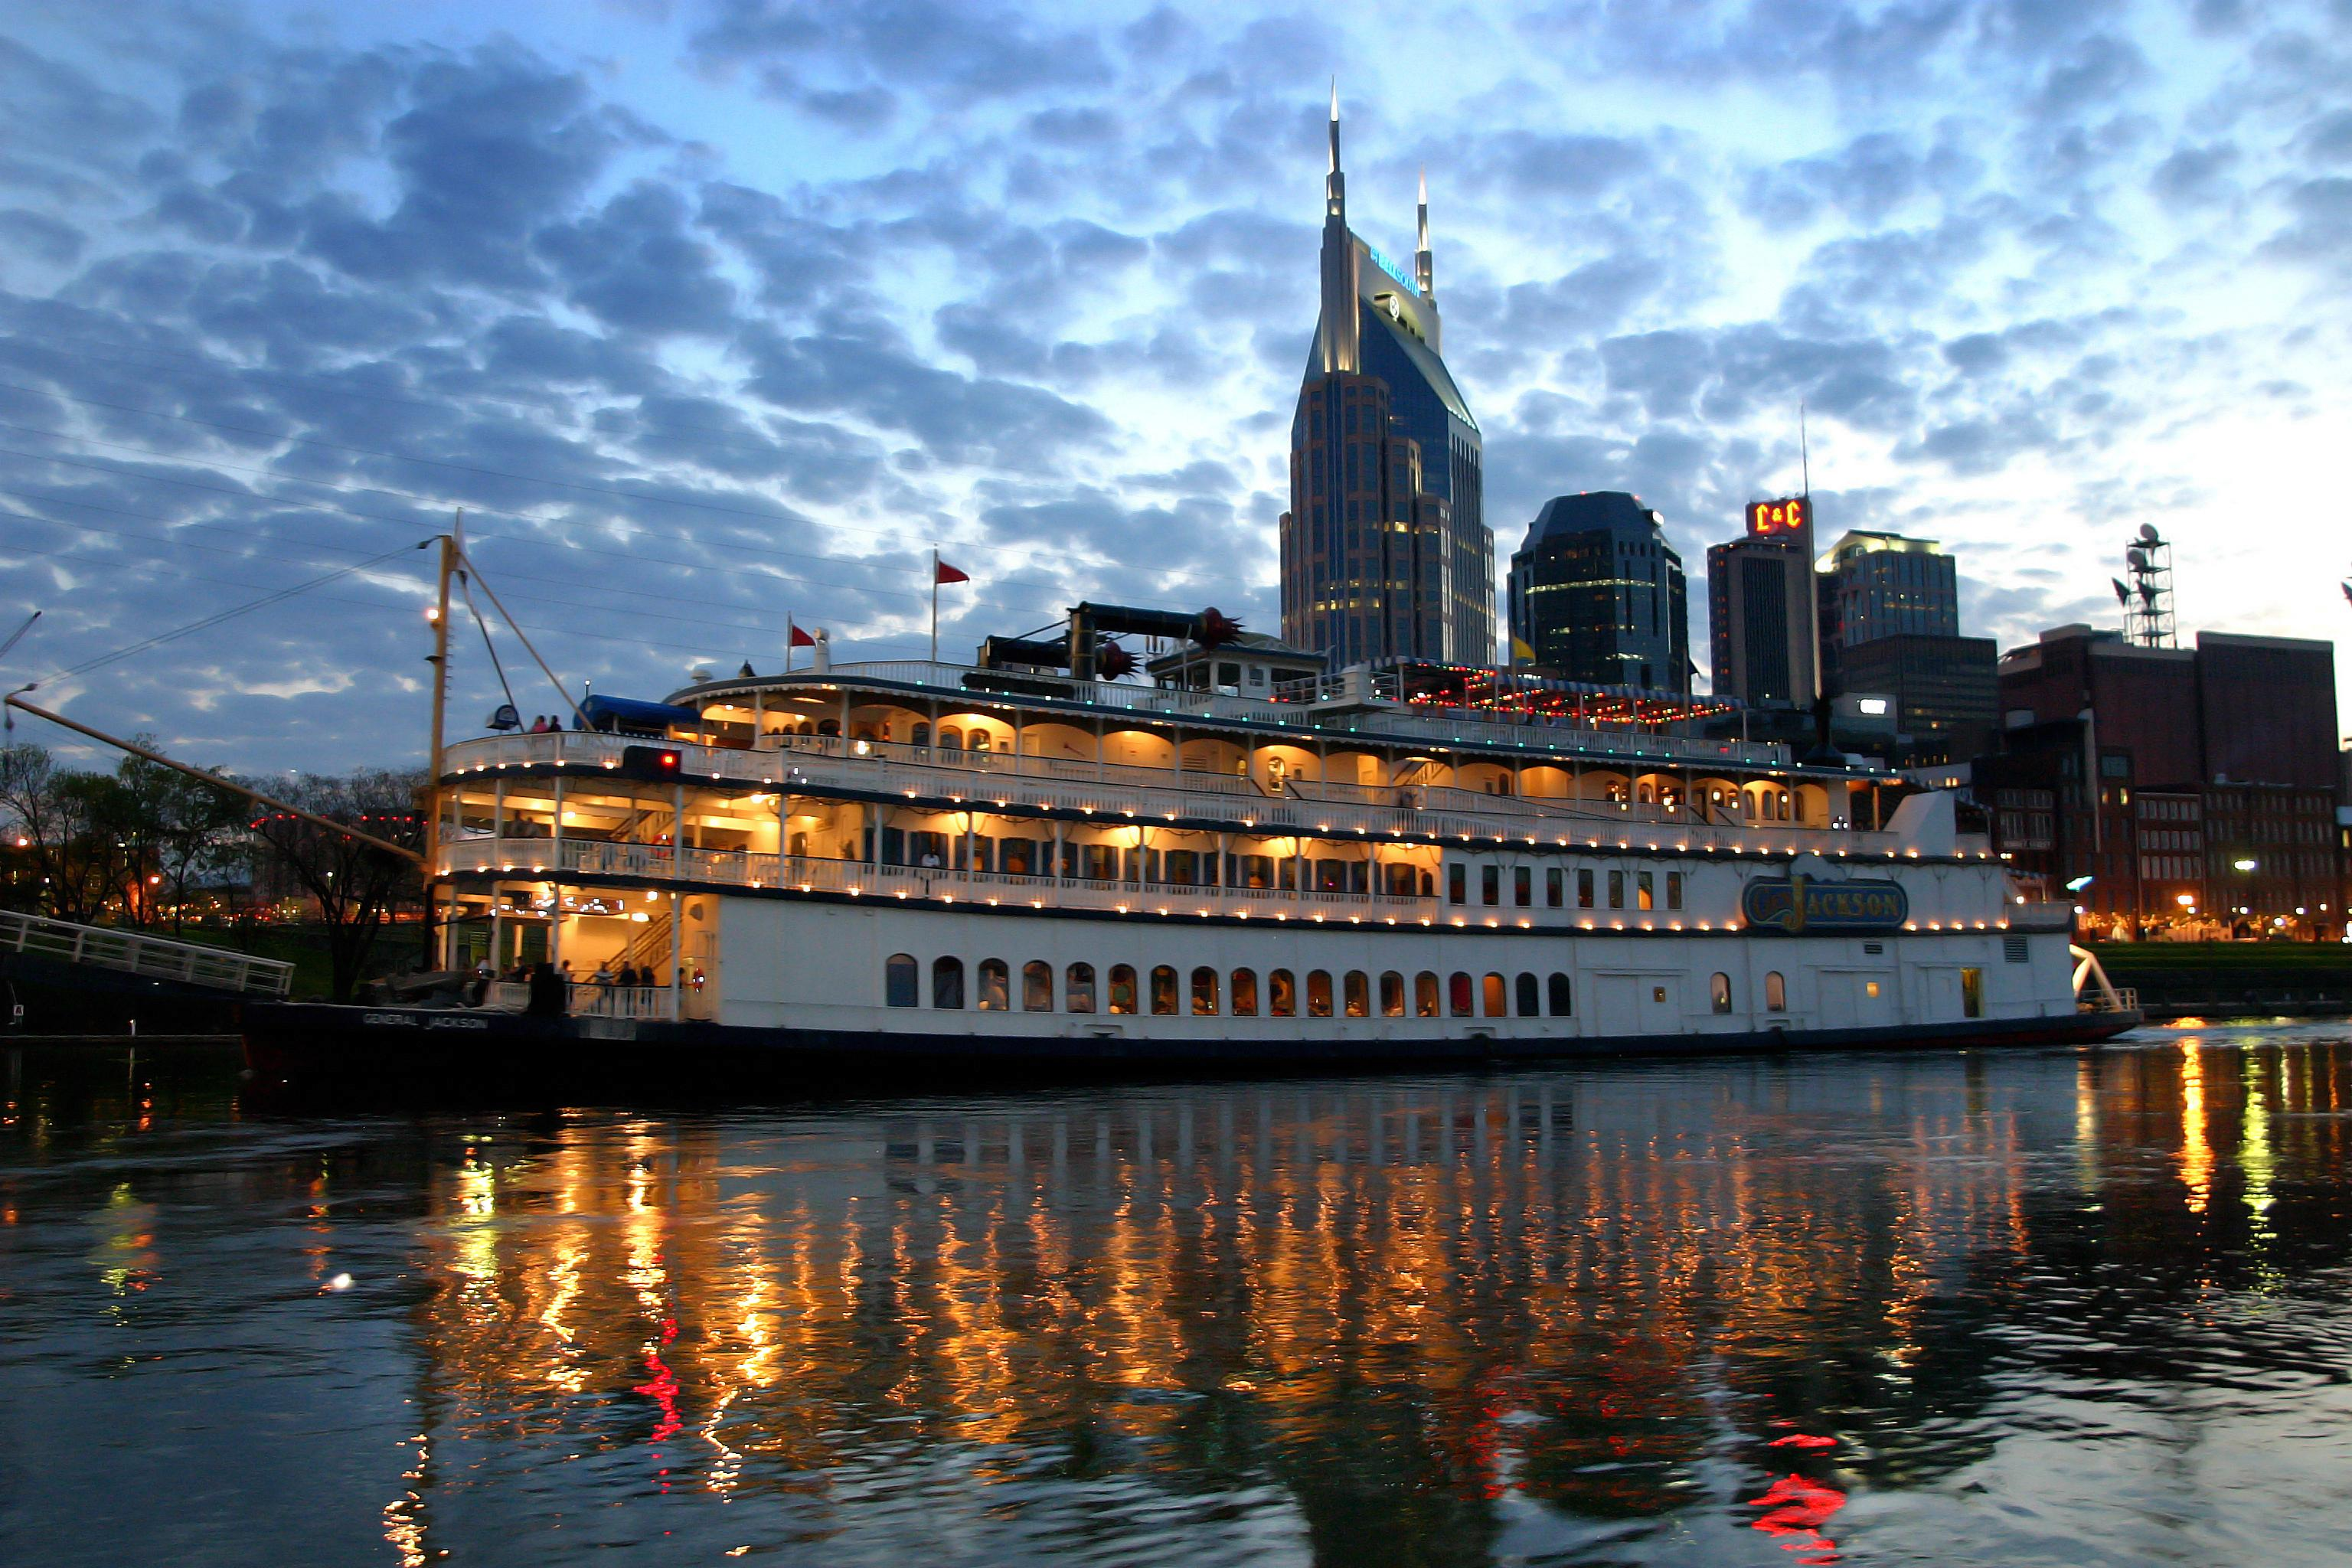 Hop aboard the General Jackson Showboat for live music or Sunday brunch with a view.